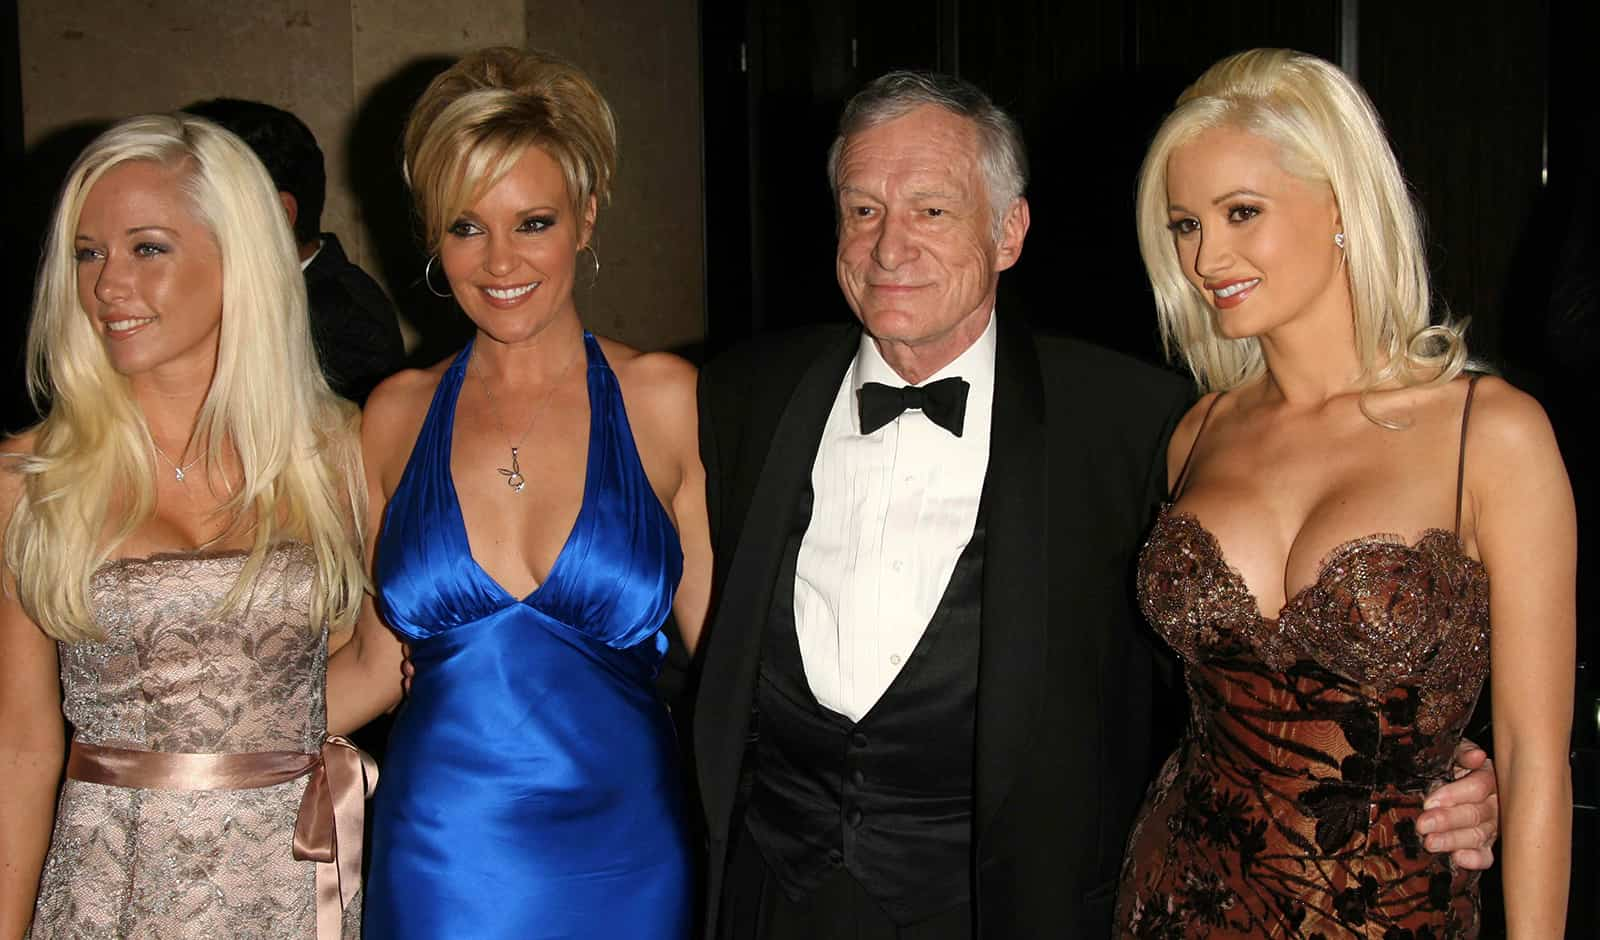 to-understand-hef-you-must-understand-his-history